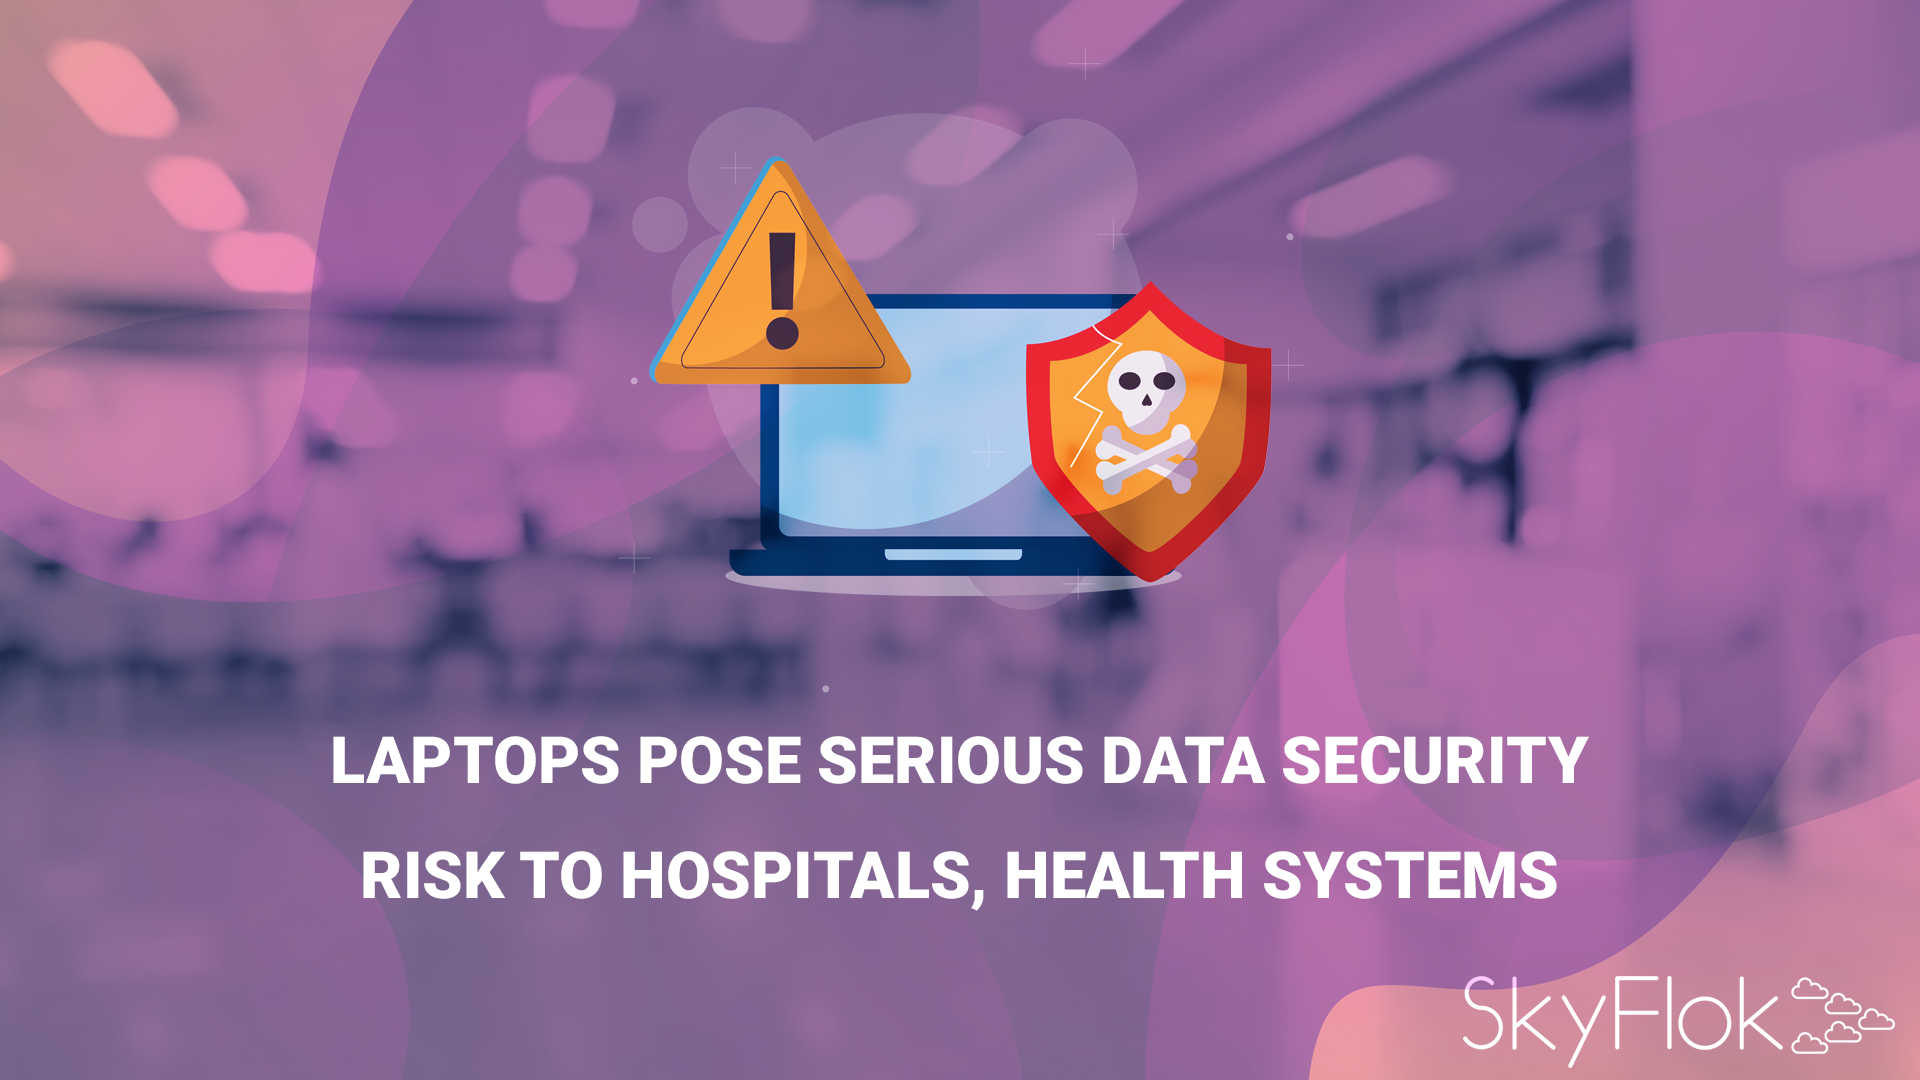 Laptops Pose Serious Data Security Risk to Hospitals, Health Systems